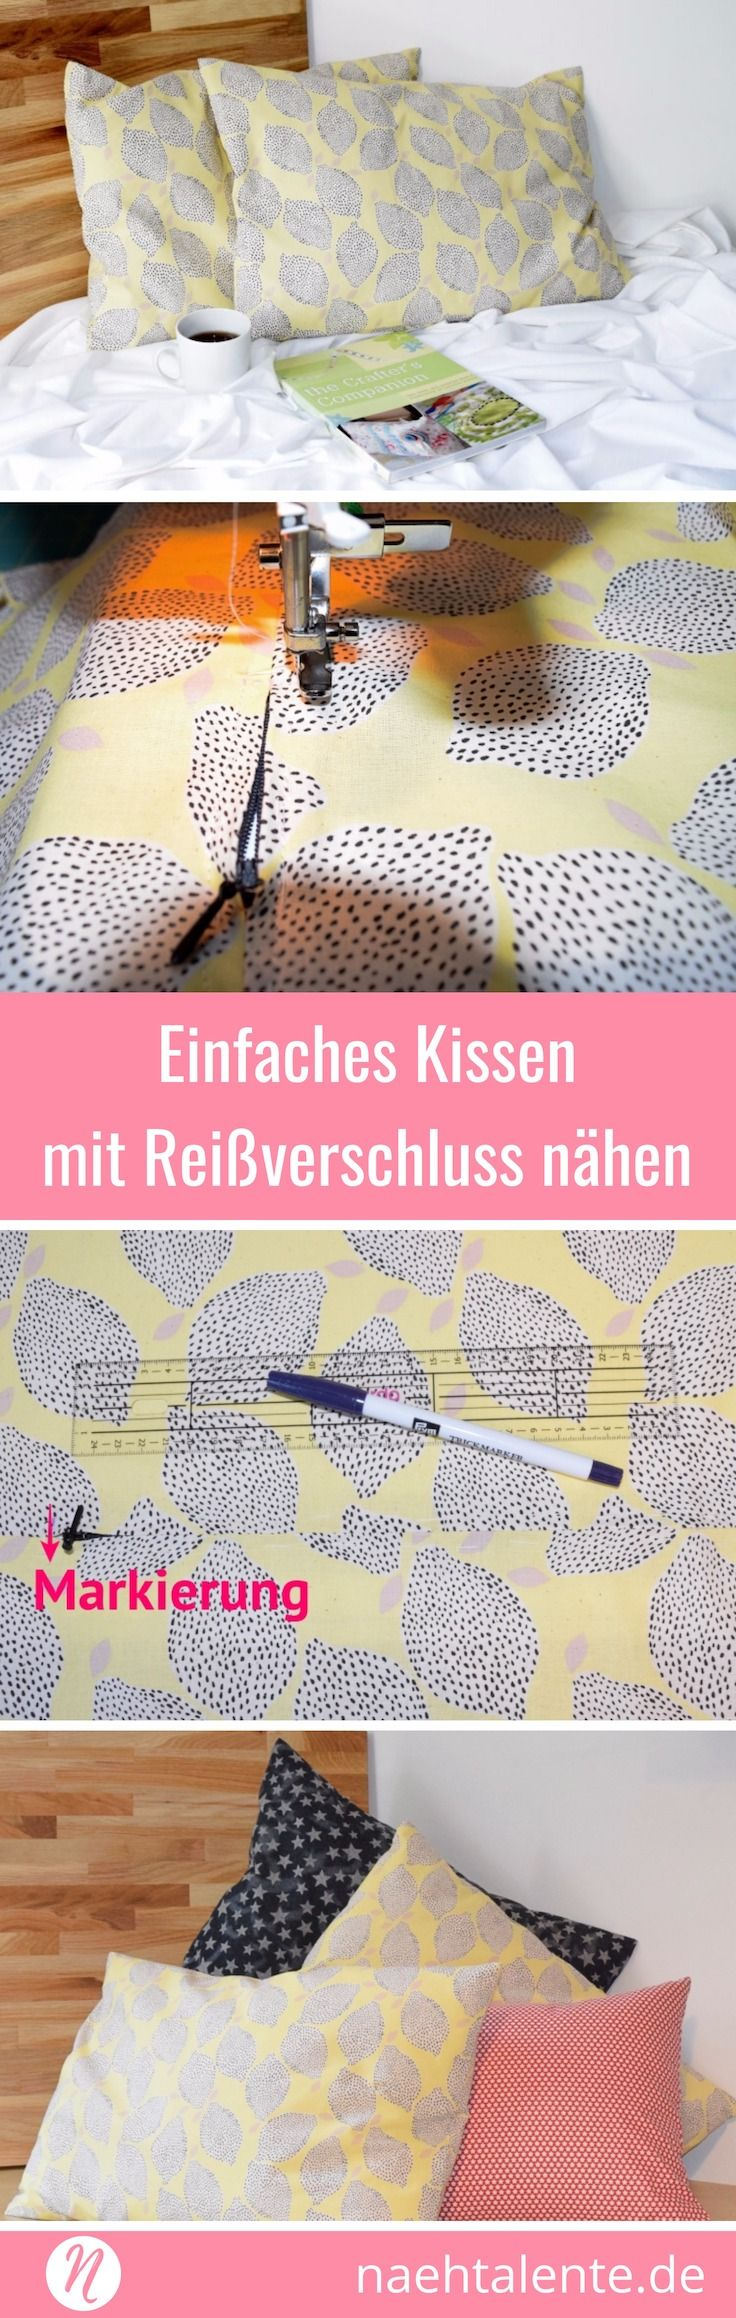 einfaches kissen mit rei verschluss n hen n h ideen u handarbeit pinterest n hen. Black Bedroom Furniture Sets. Home Design Ideas